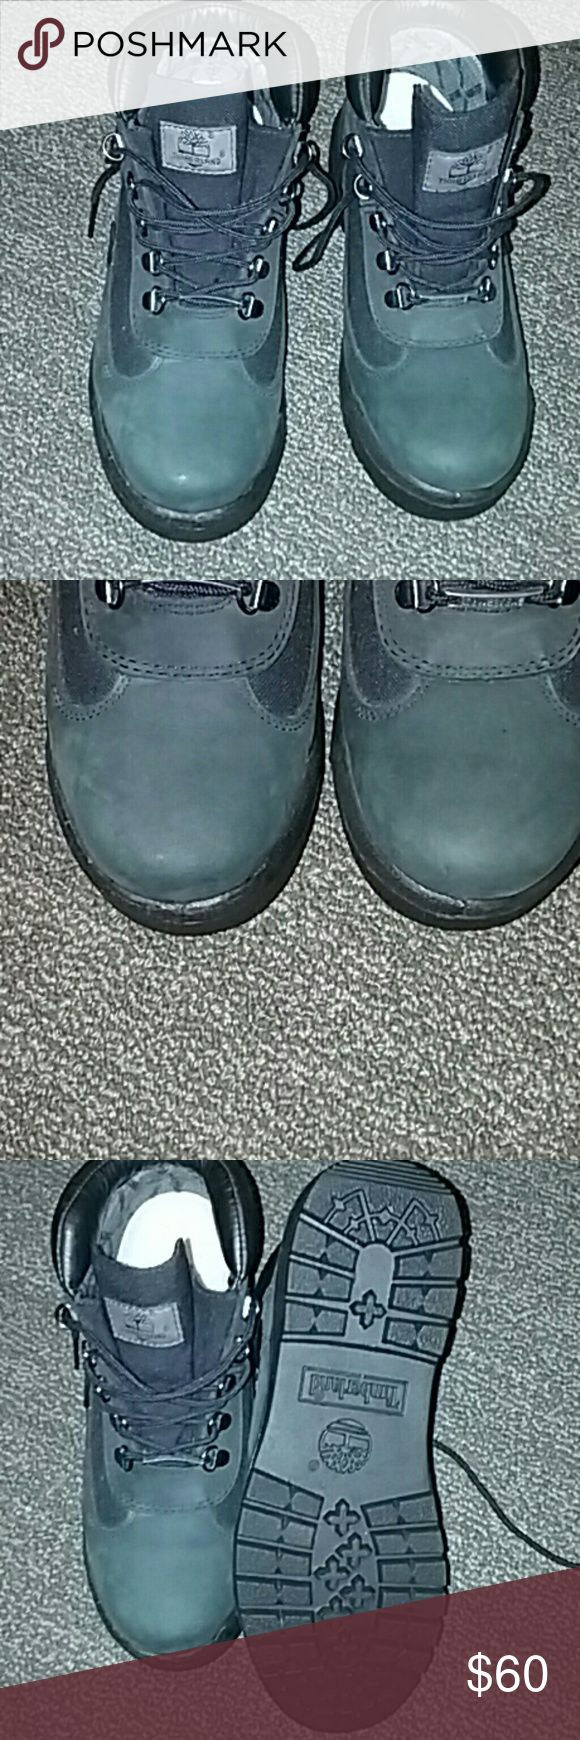 Timberland Gore-Tex boots men size 7M Hunter green and black Gore-Tex by Timberland. It's that time of year! Keep your feet warm while stomping in style! Timberland Shoes Boots